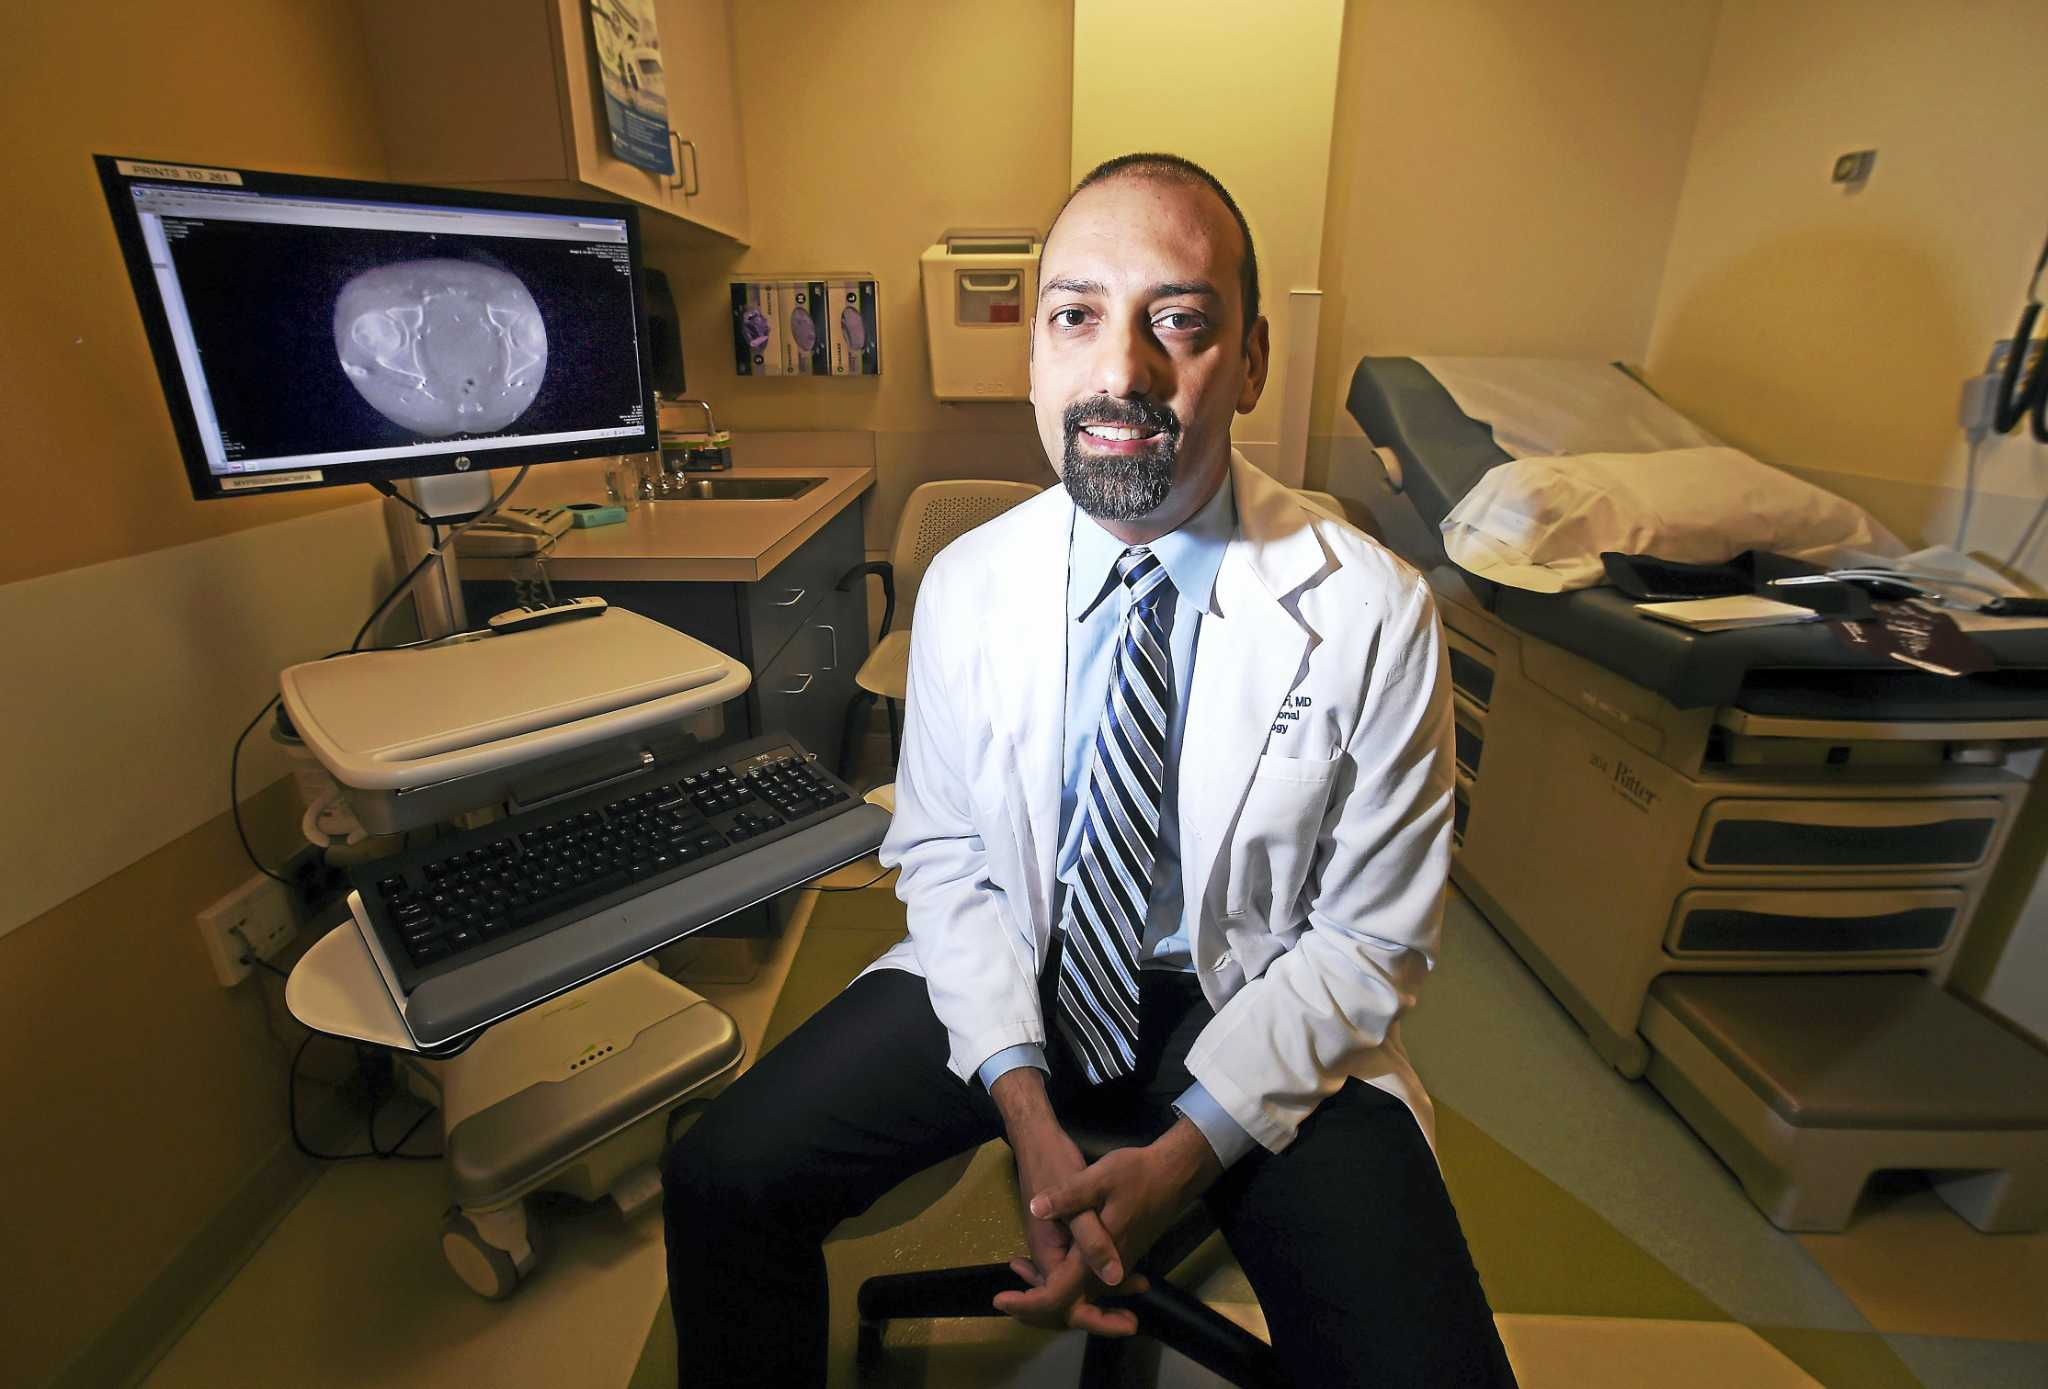 Yale New Haven doctor uses nonsurgical method to reduce